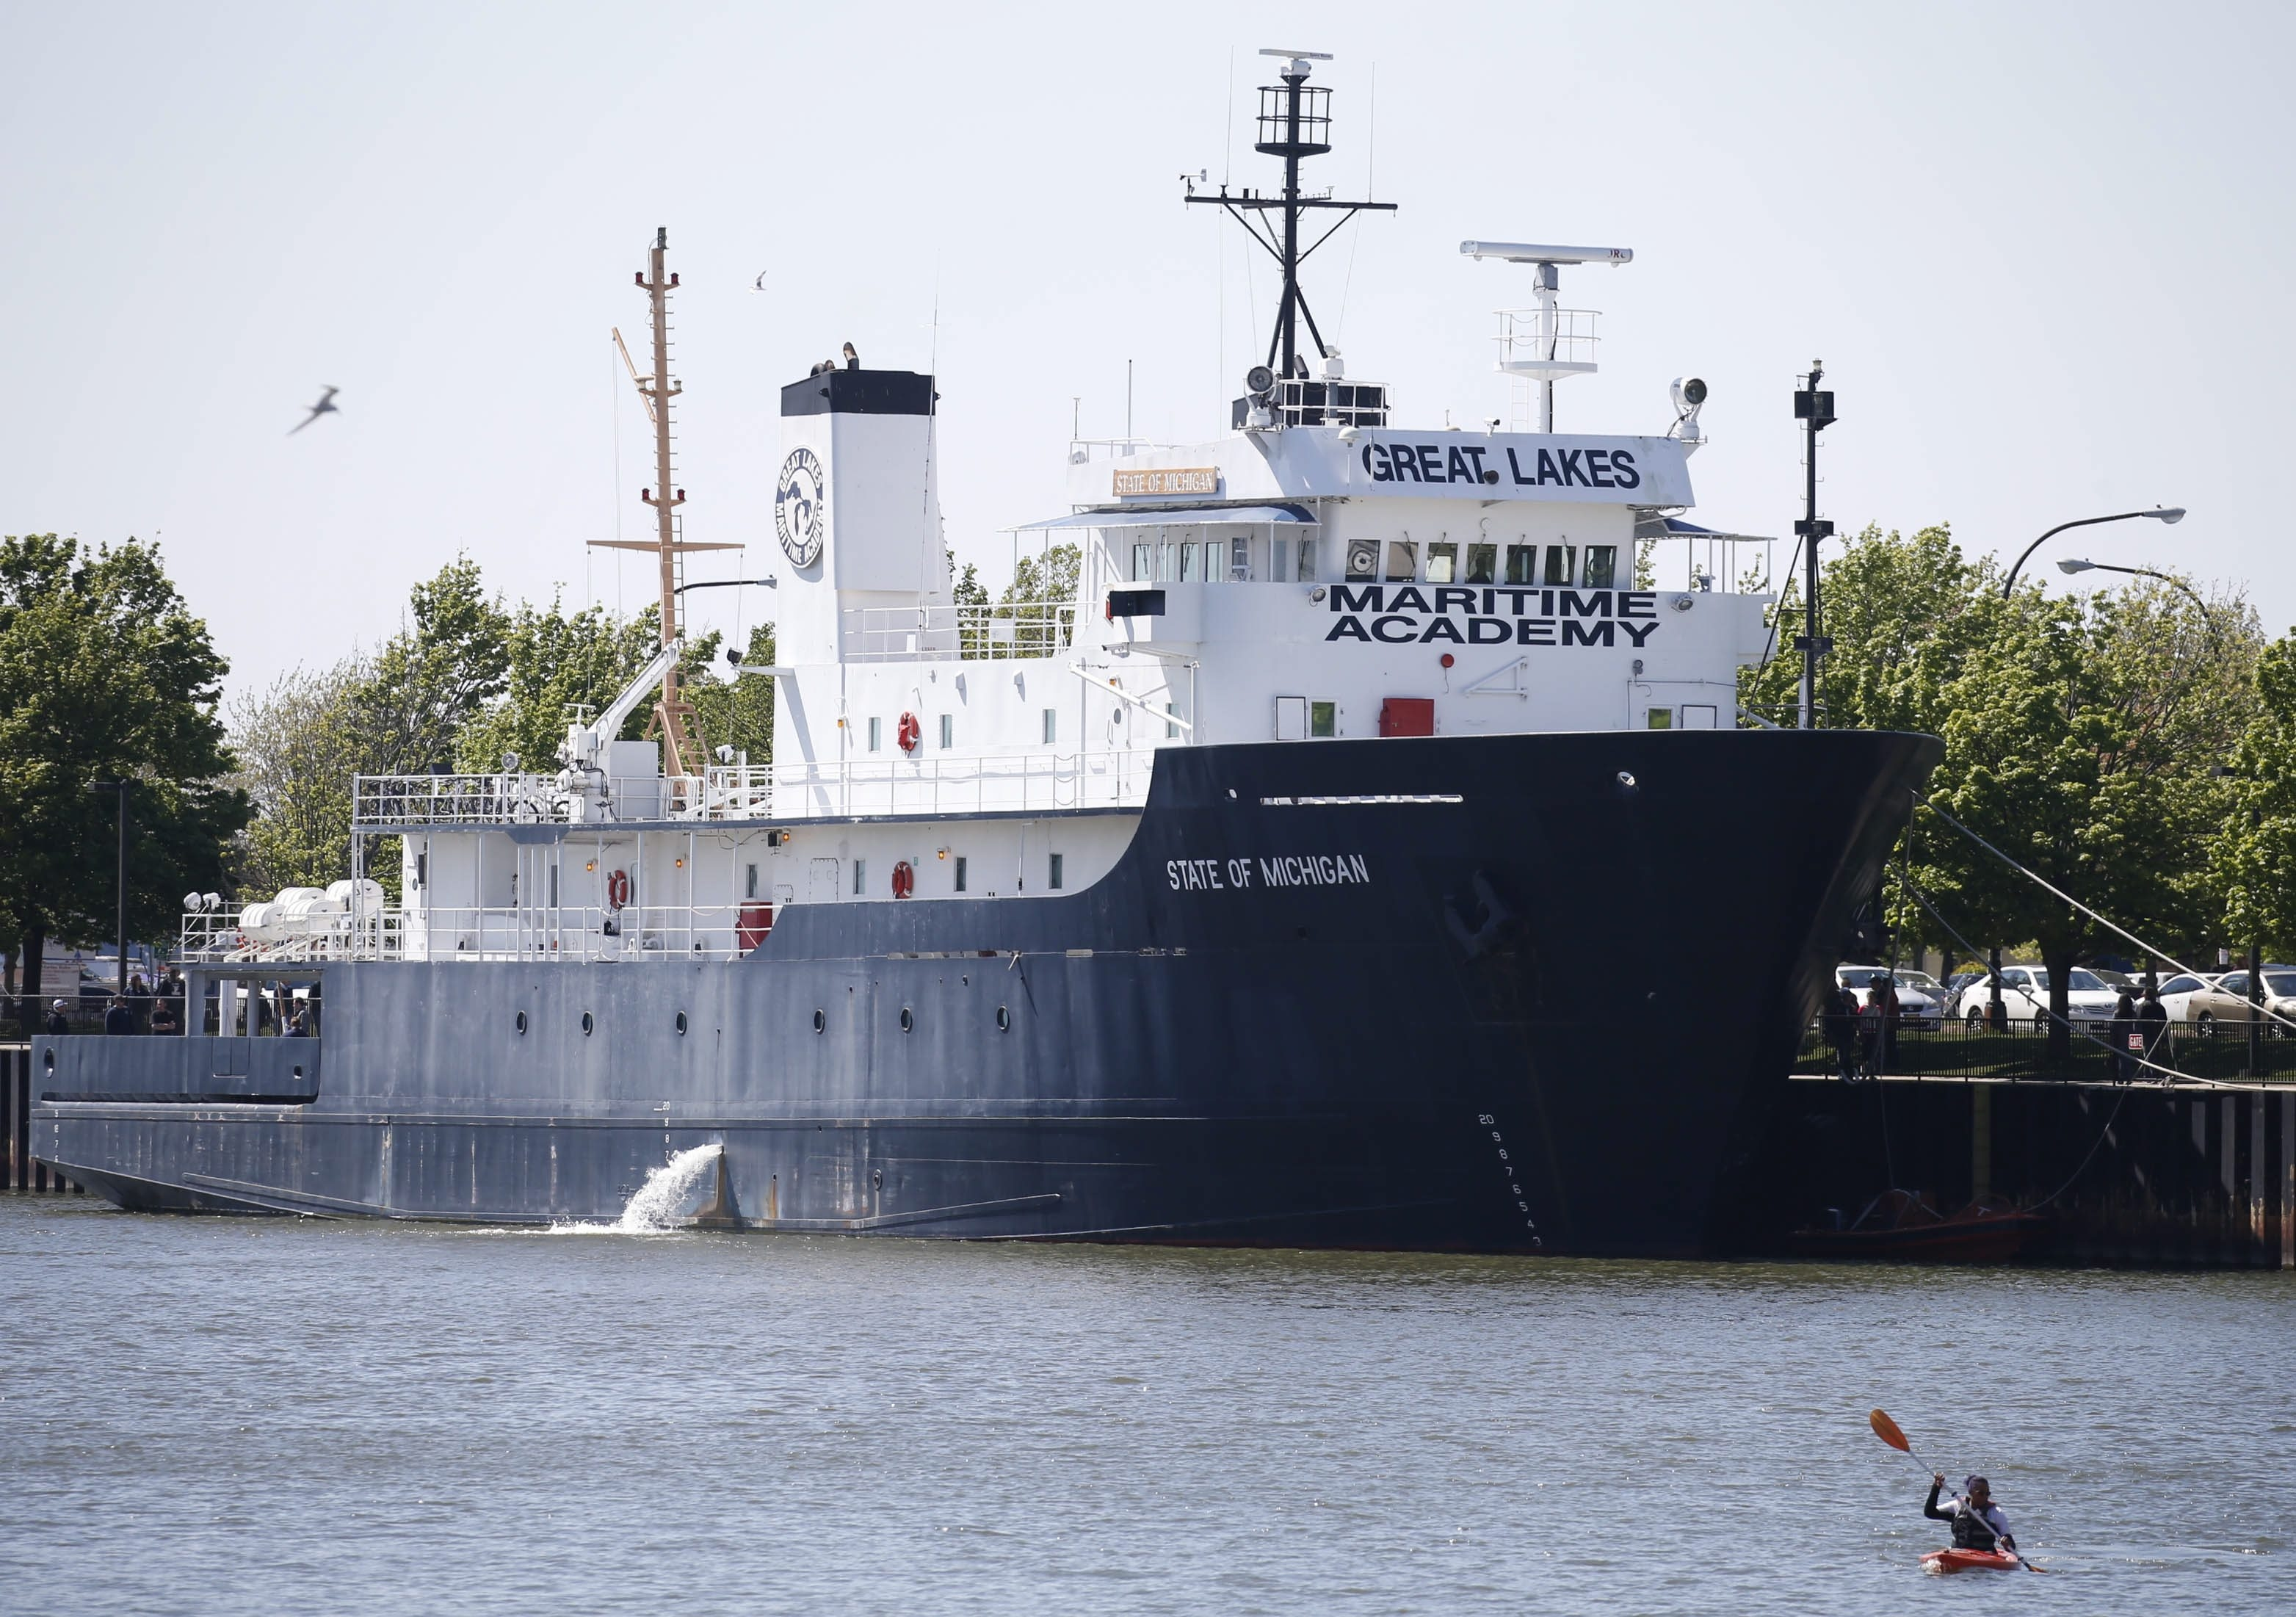 The State of Michigan, a Great Lakes Maritime Academy vessel, docked at Erie Basin Marina on Saturday. The ship is a mobile classroom for students seeking to become sailors.